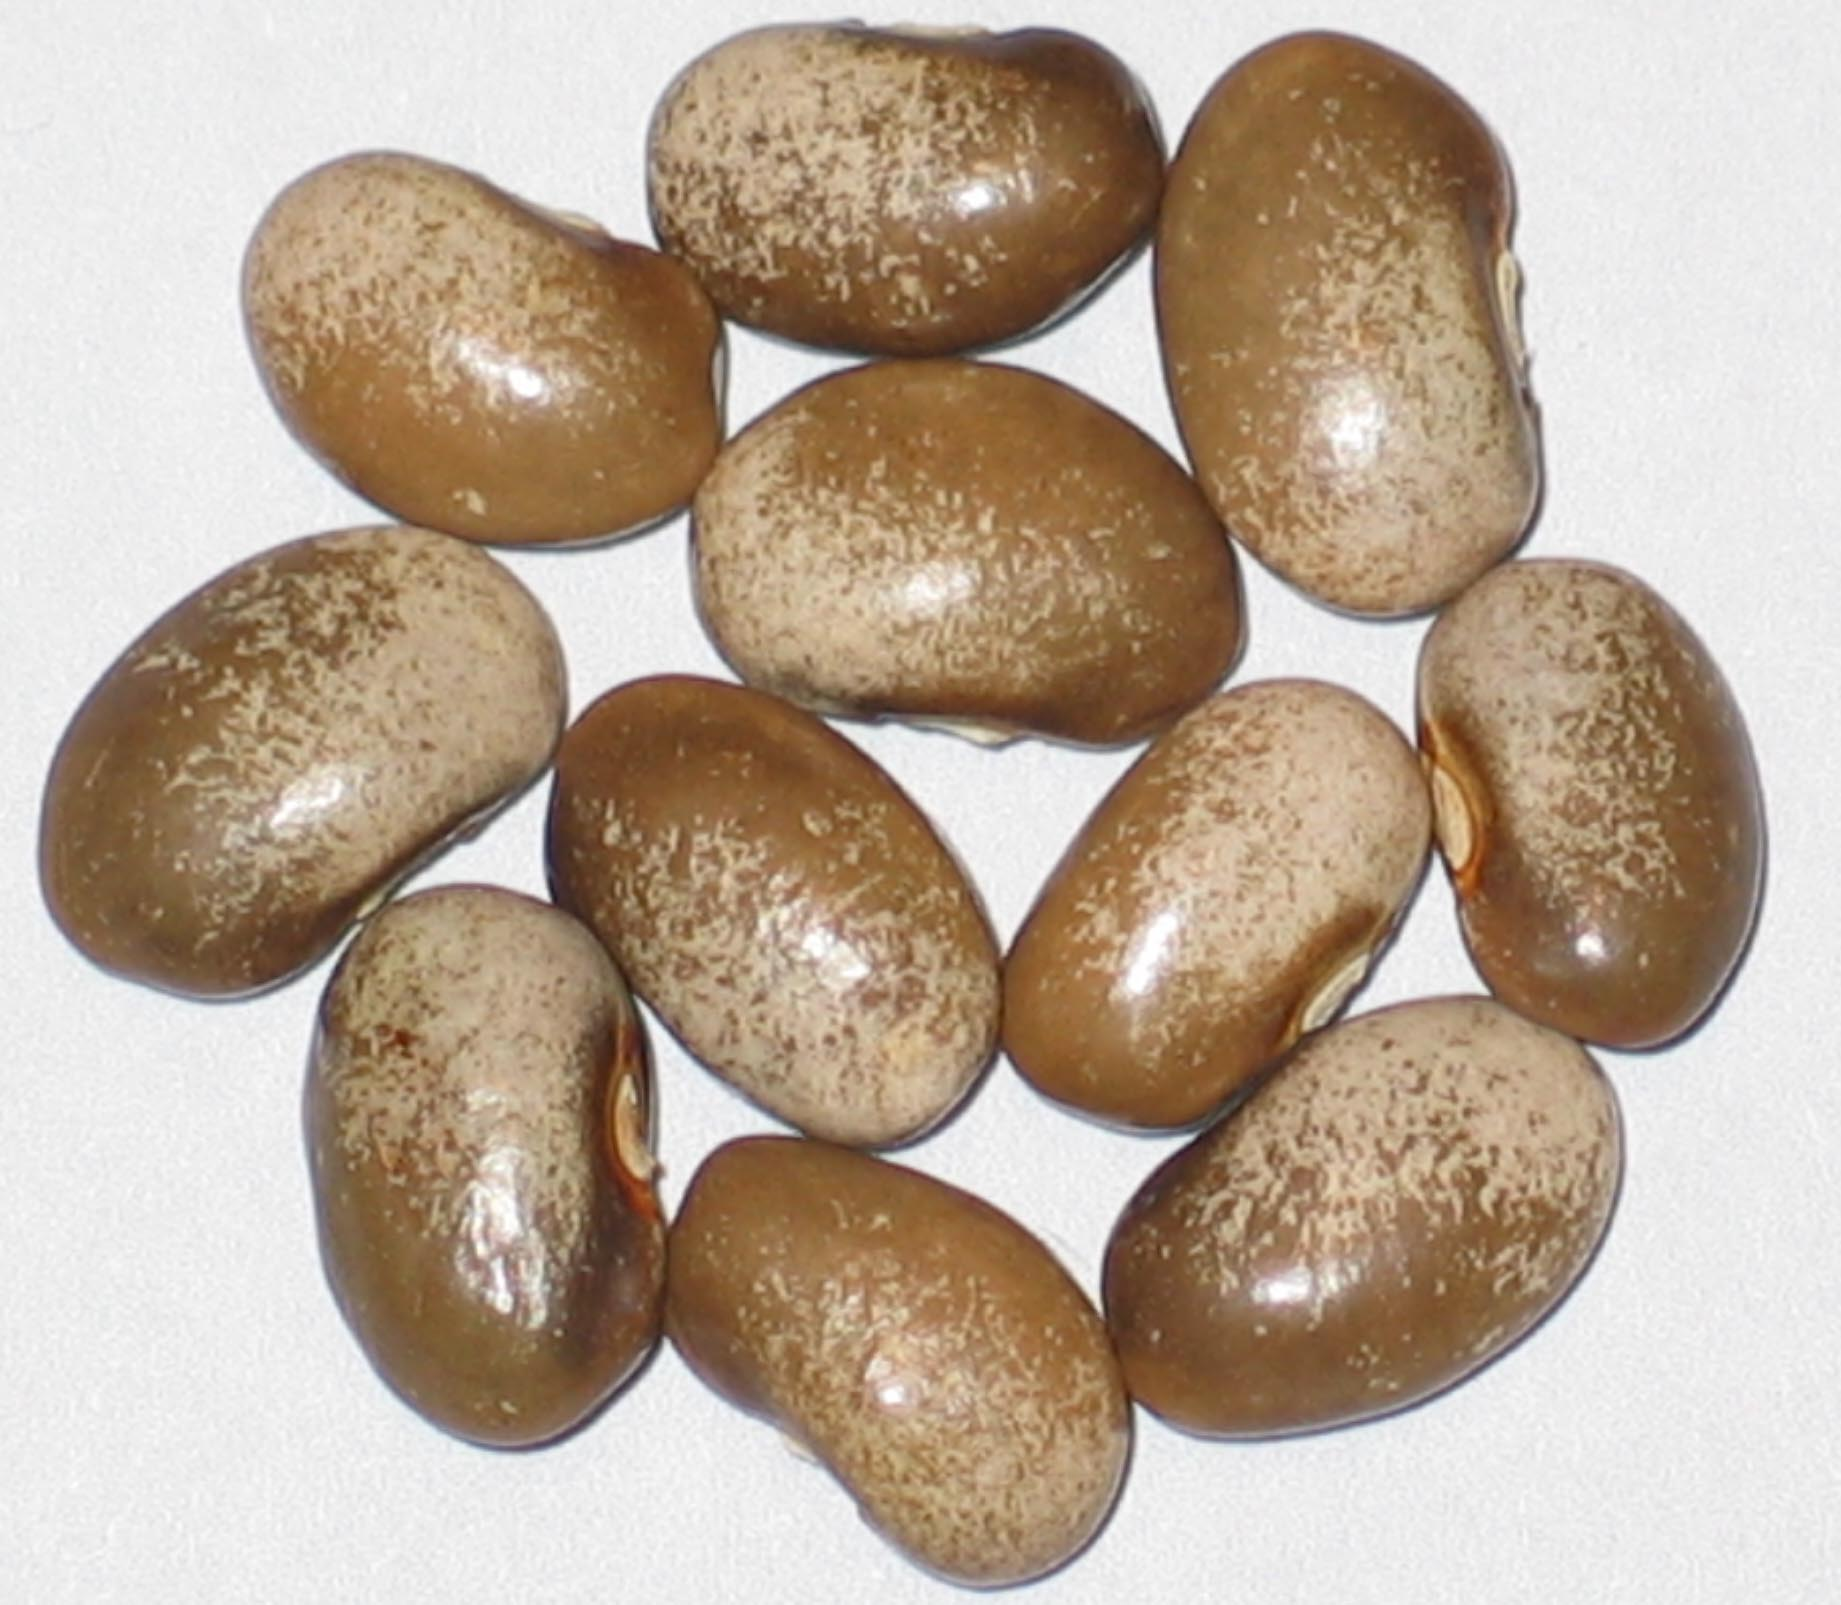 image of Milk And Cider beans